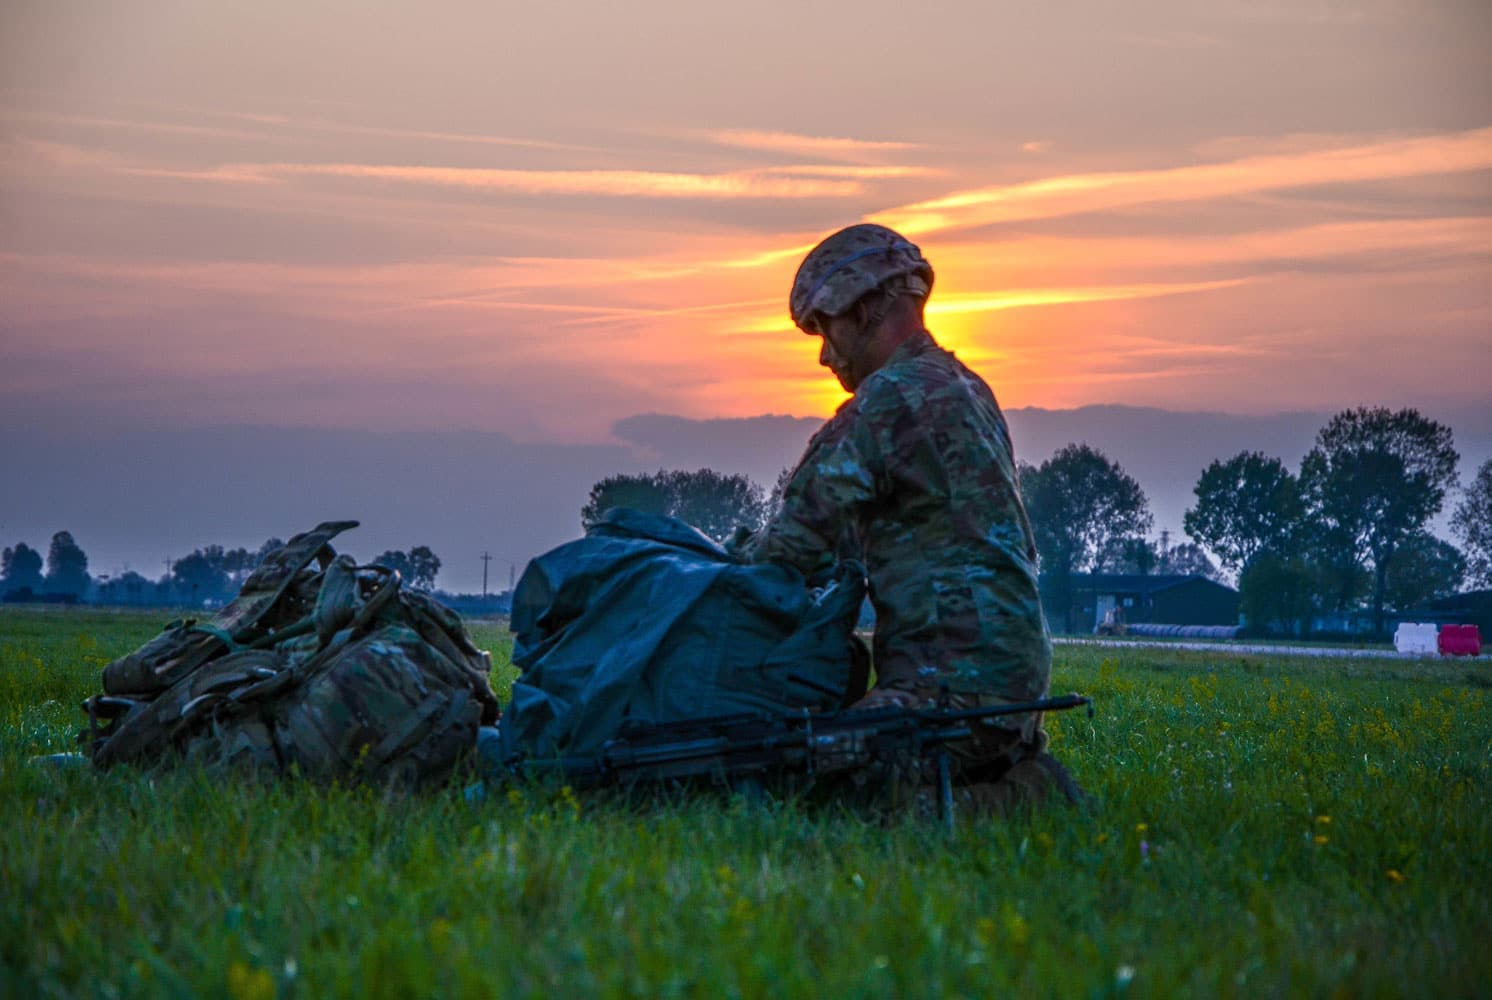 A paratrooper from the 173rd Airborne Brigade readies his gear after landing on the drop zone in Italy.